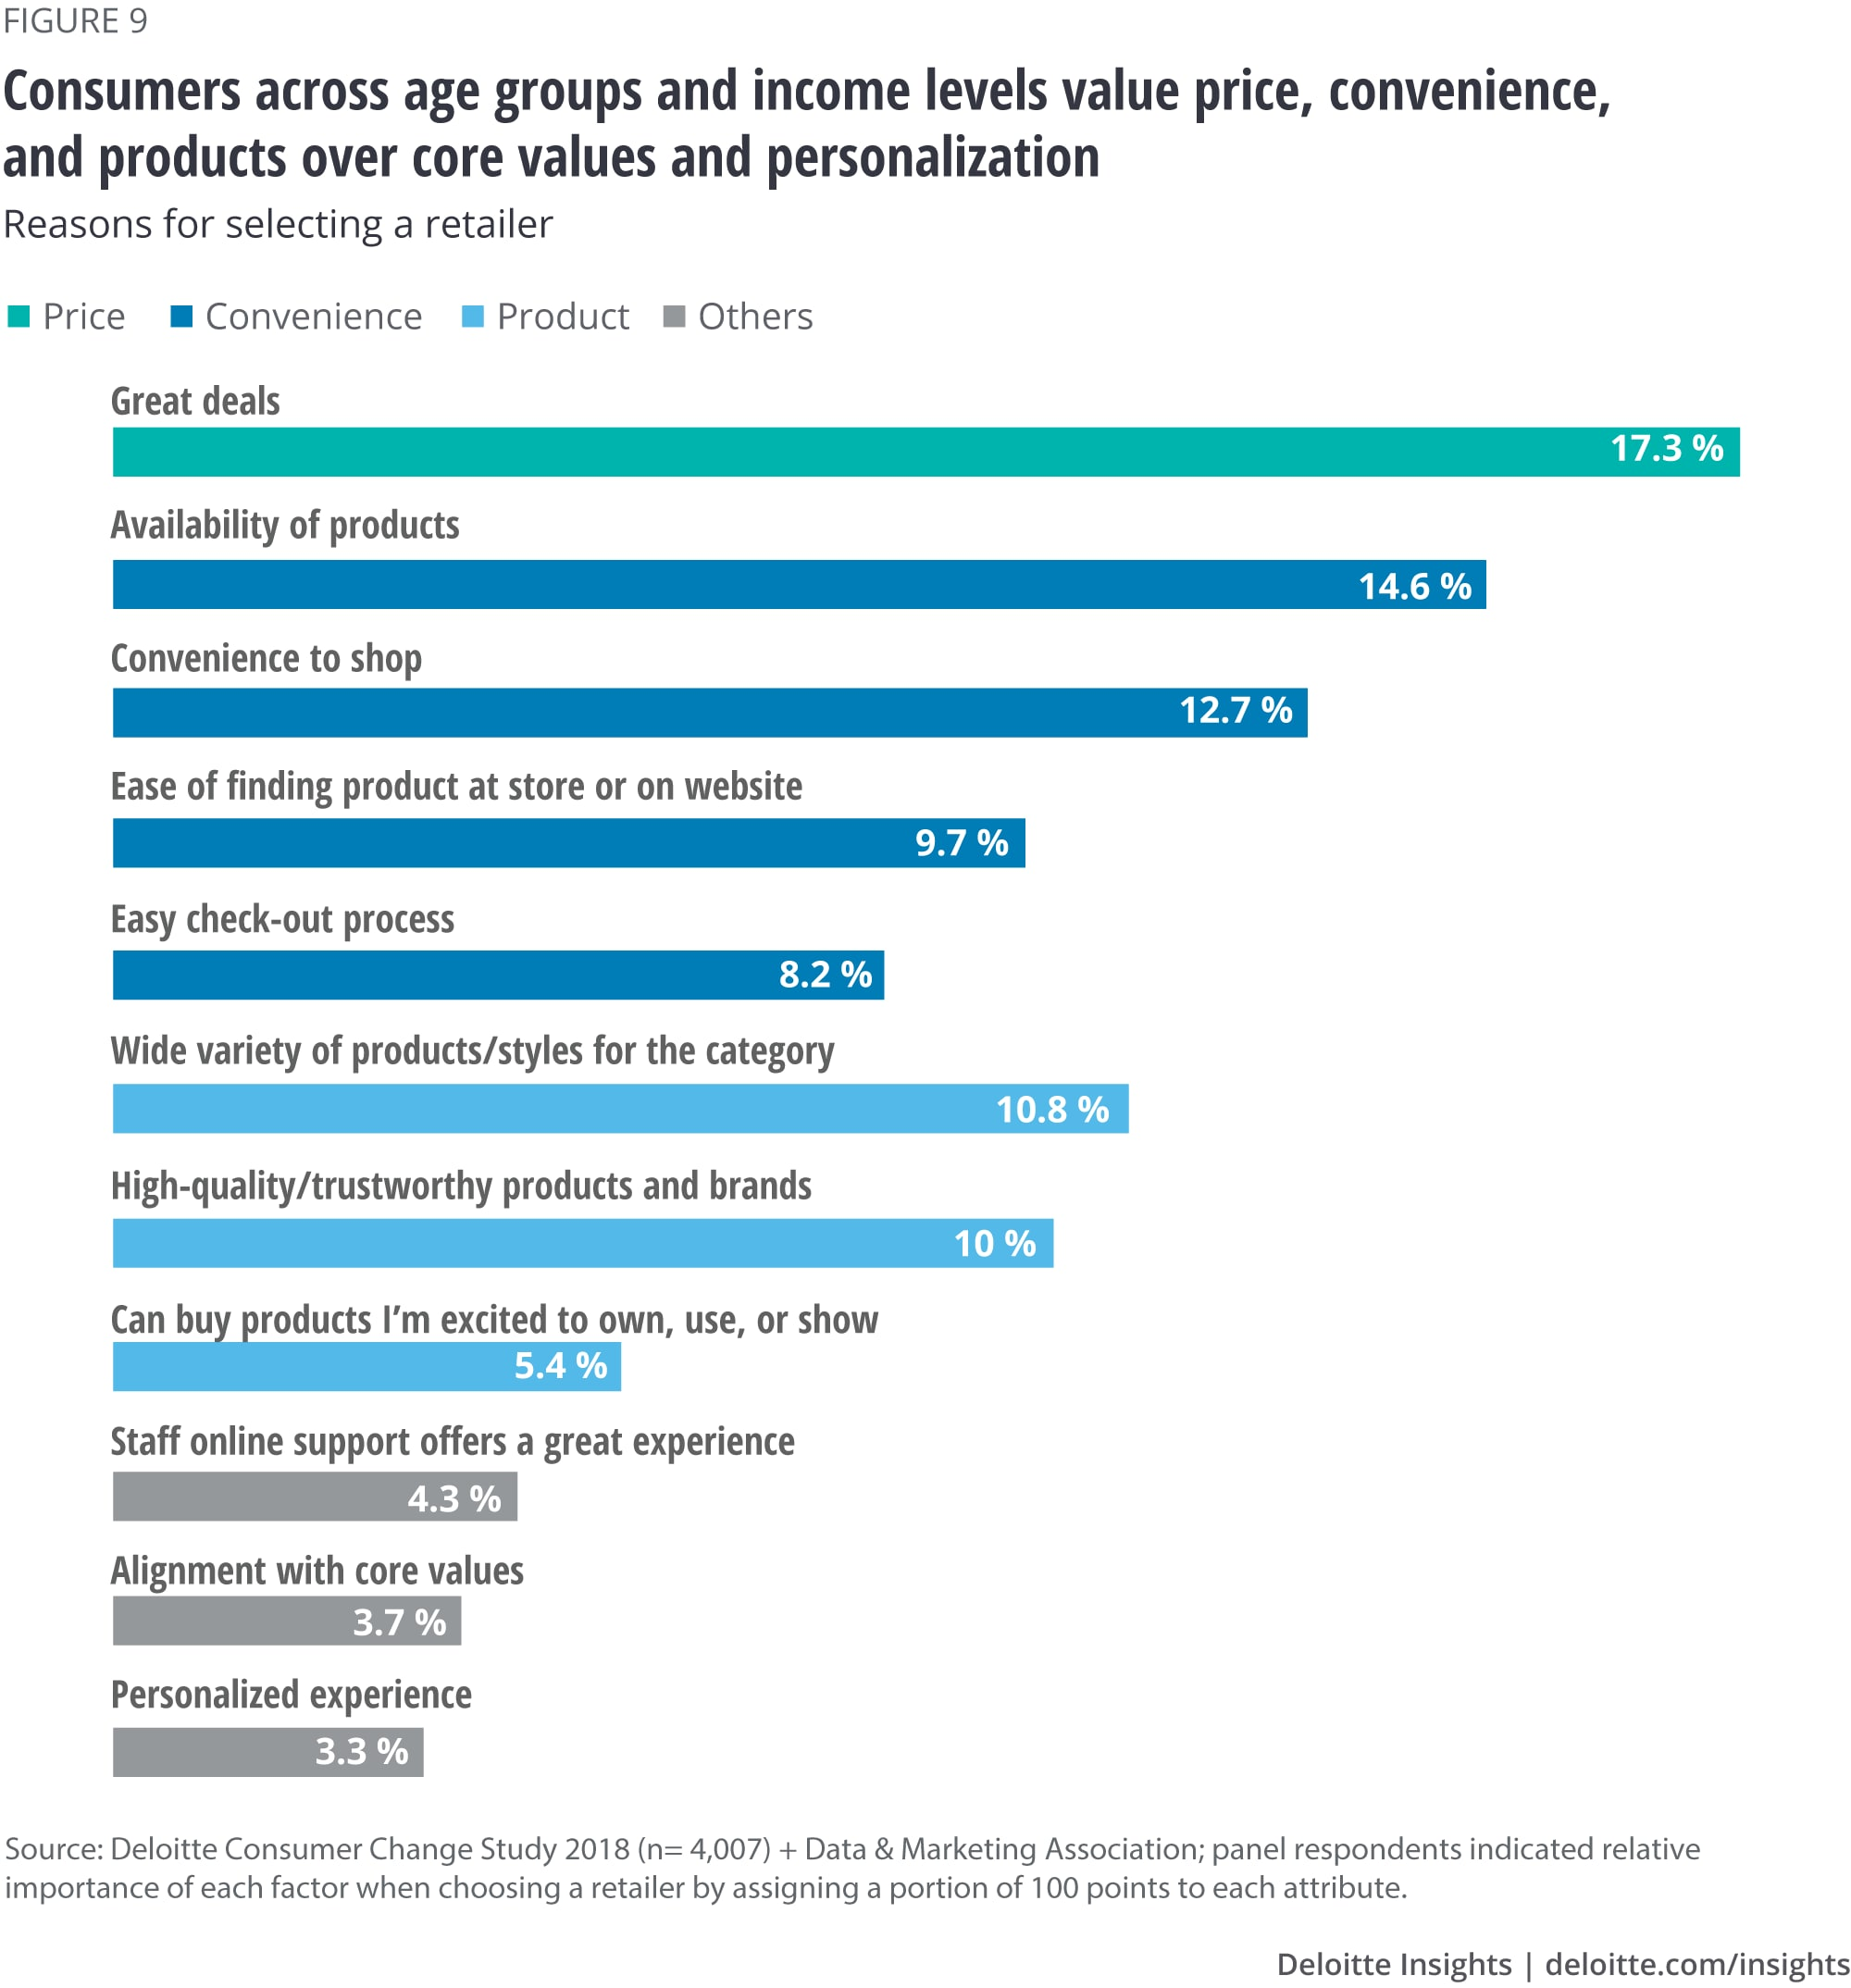 Consumers across age groups and income levels value price, convenience, and products over core values and personalization